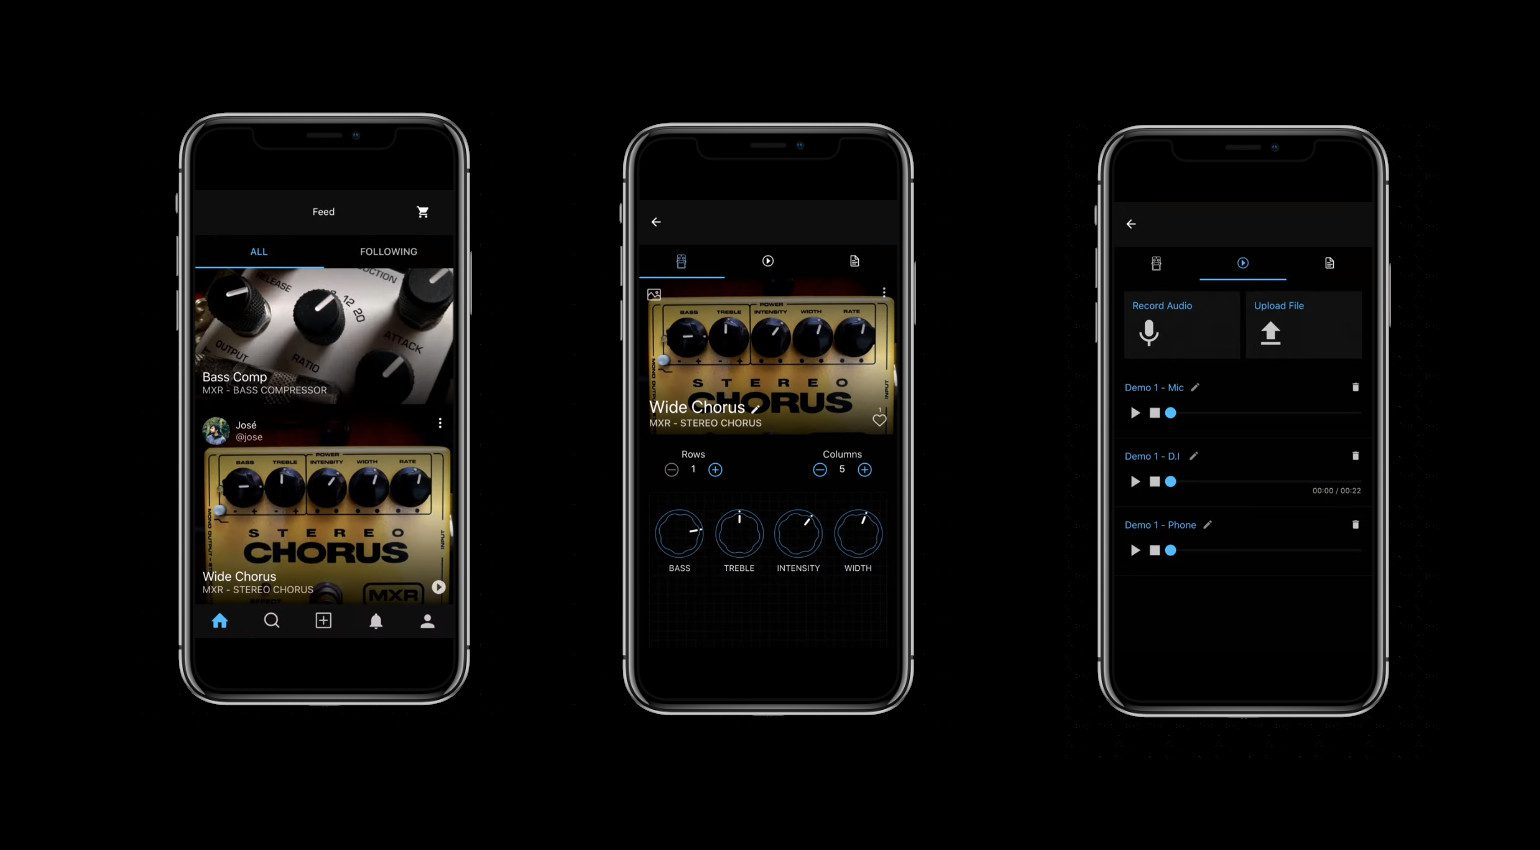 KnobsAI Effekt Pedal Scan App iOS Android Smartphone iphone cloud recording